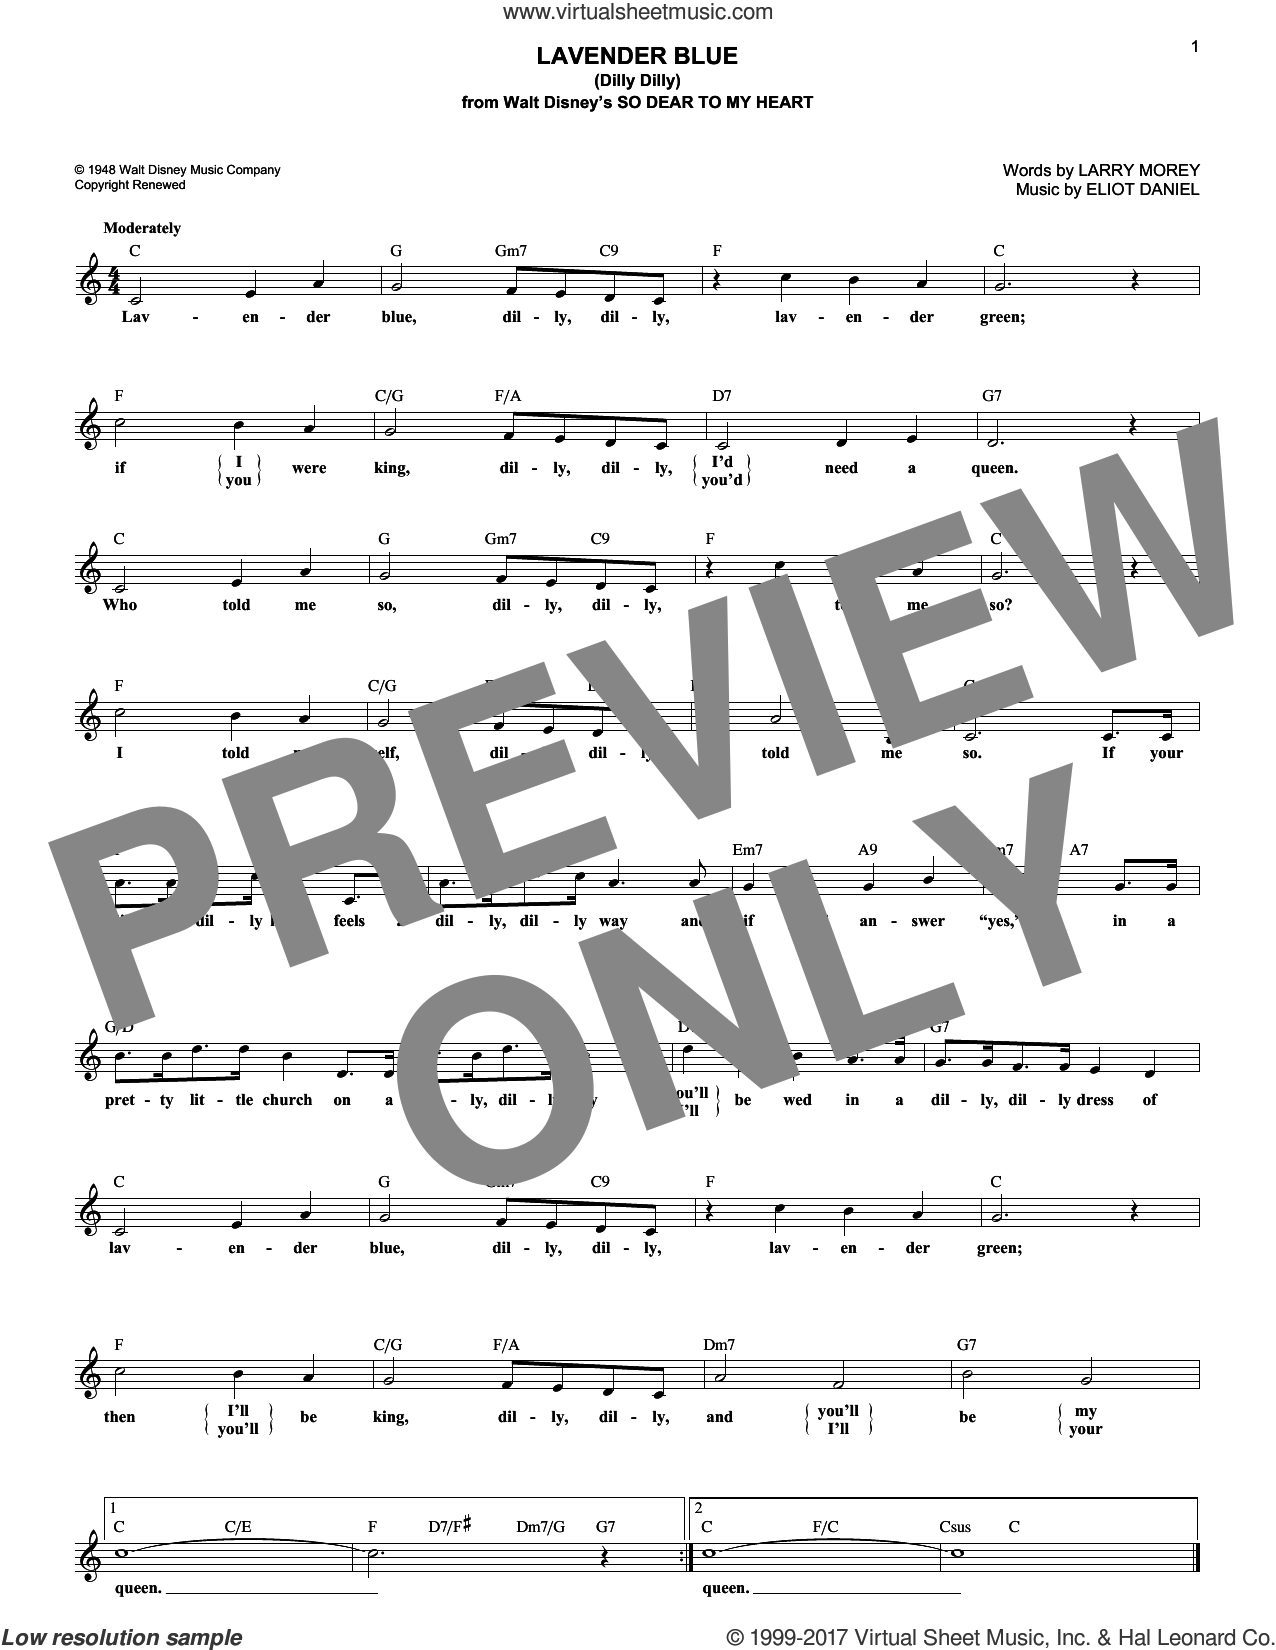 Lavender Blue (Dilly Dilly) sheet music for voice and other instruments (fake book) by Sammy Turner, Eliot Daniel and Larry Morey, intermediate skill level